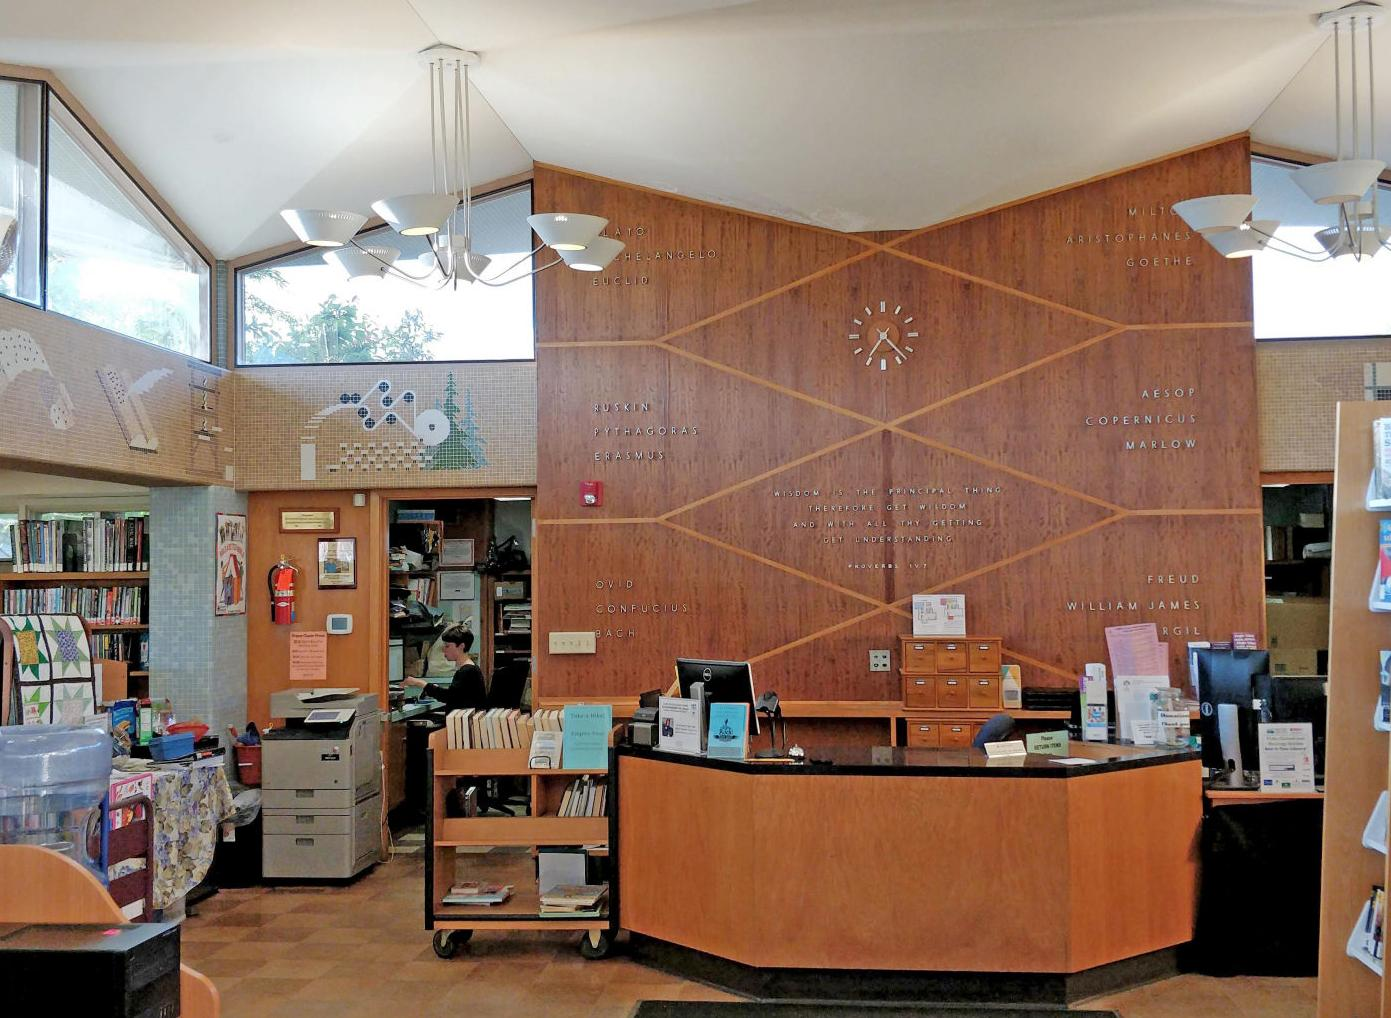 New look (and books) for Ovid library